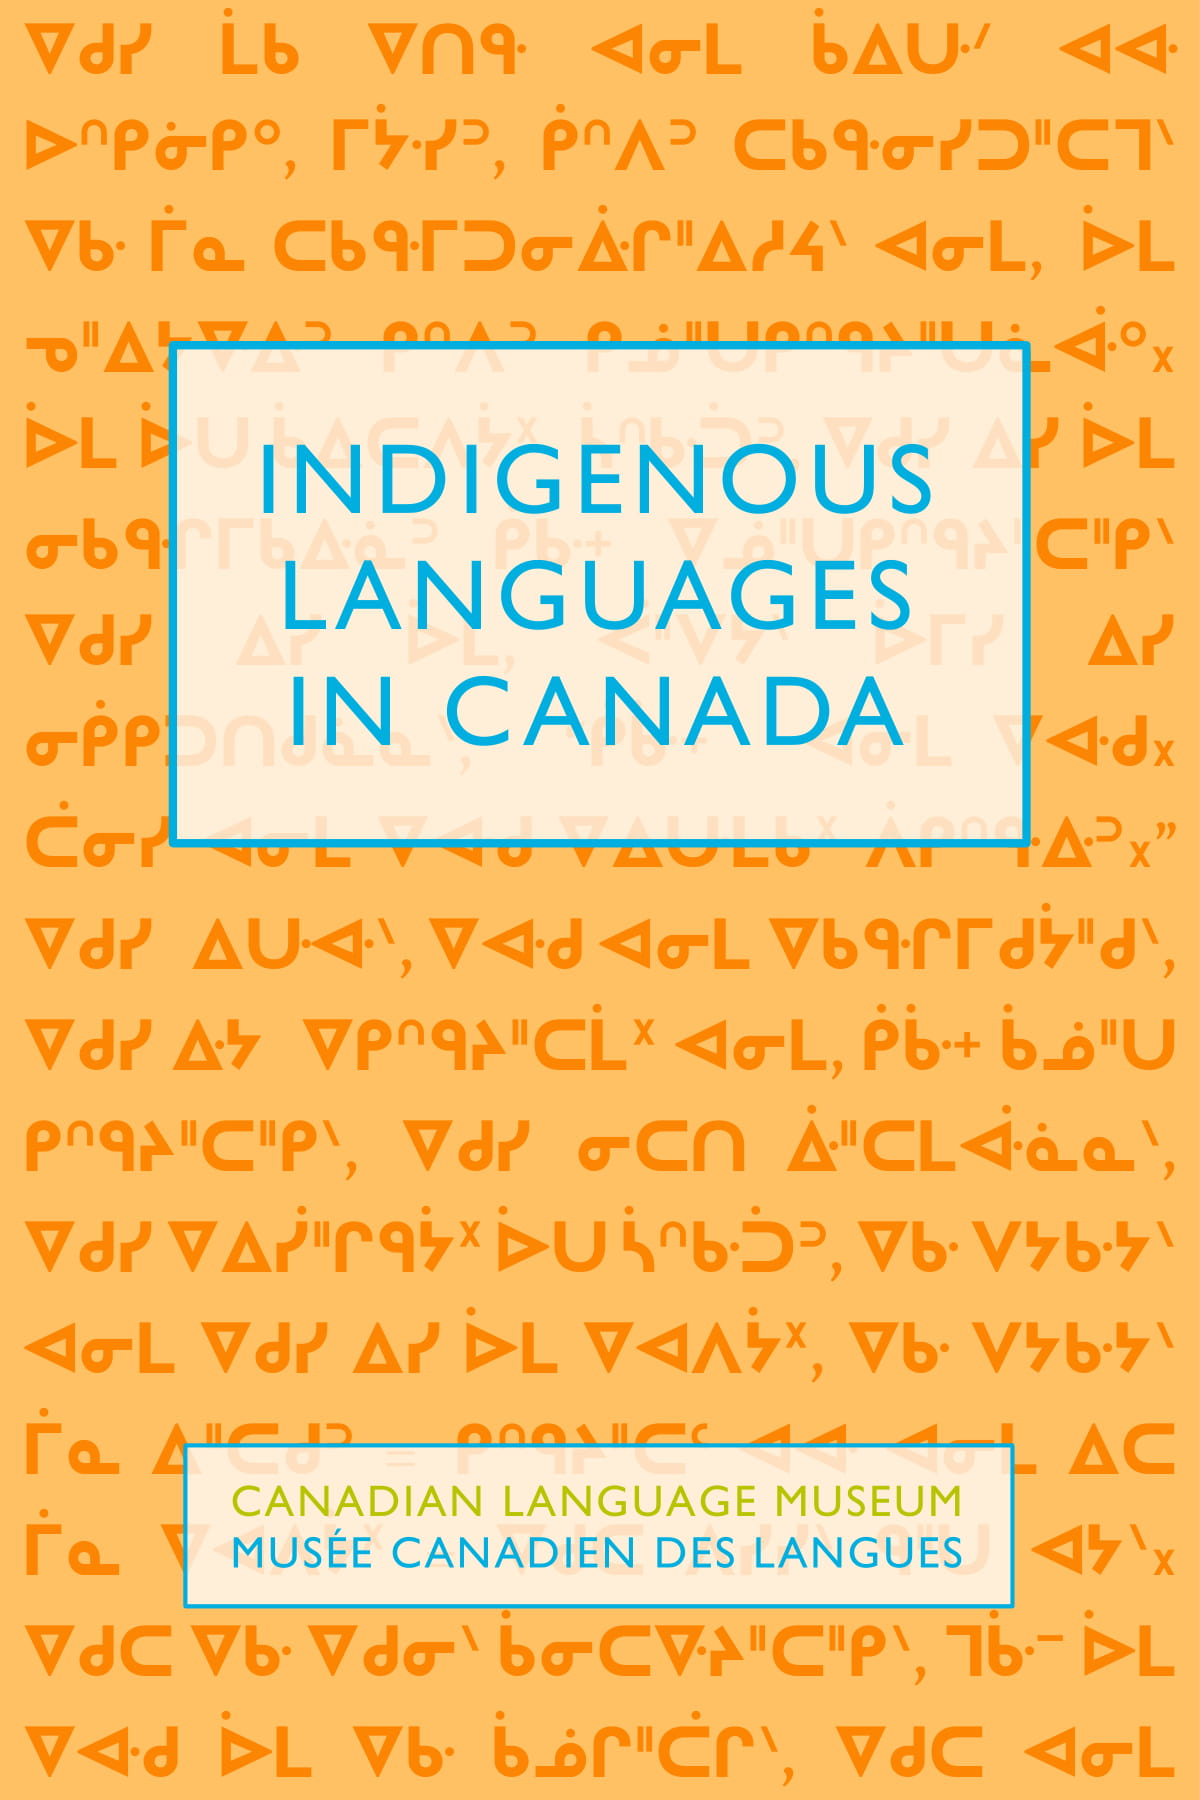 Front cover of the Indigenous Languages in Canada booklet, with a background image of syllabic text behind the title. The image links to the full pdf of the booklet.